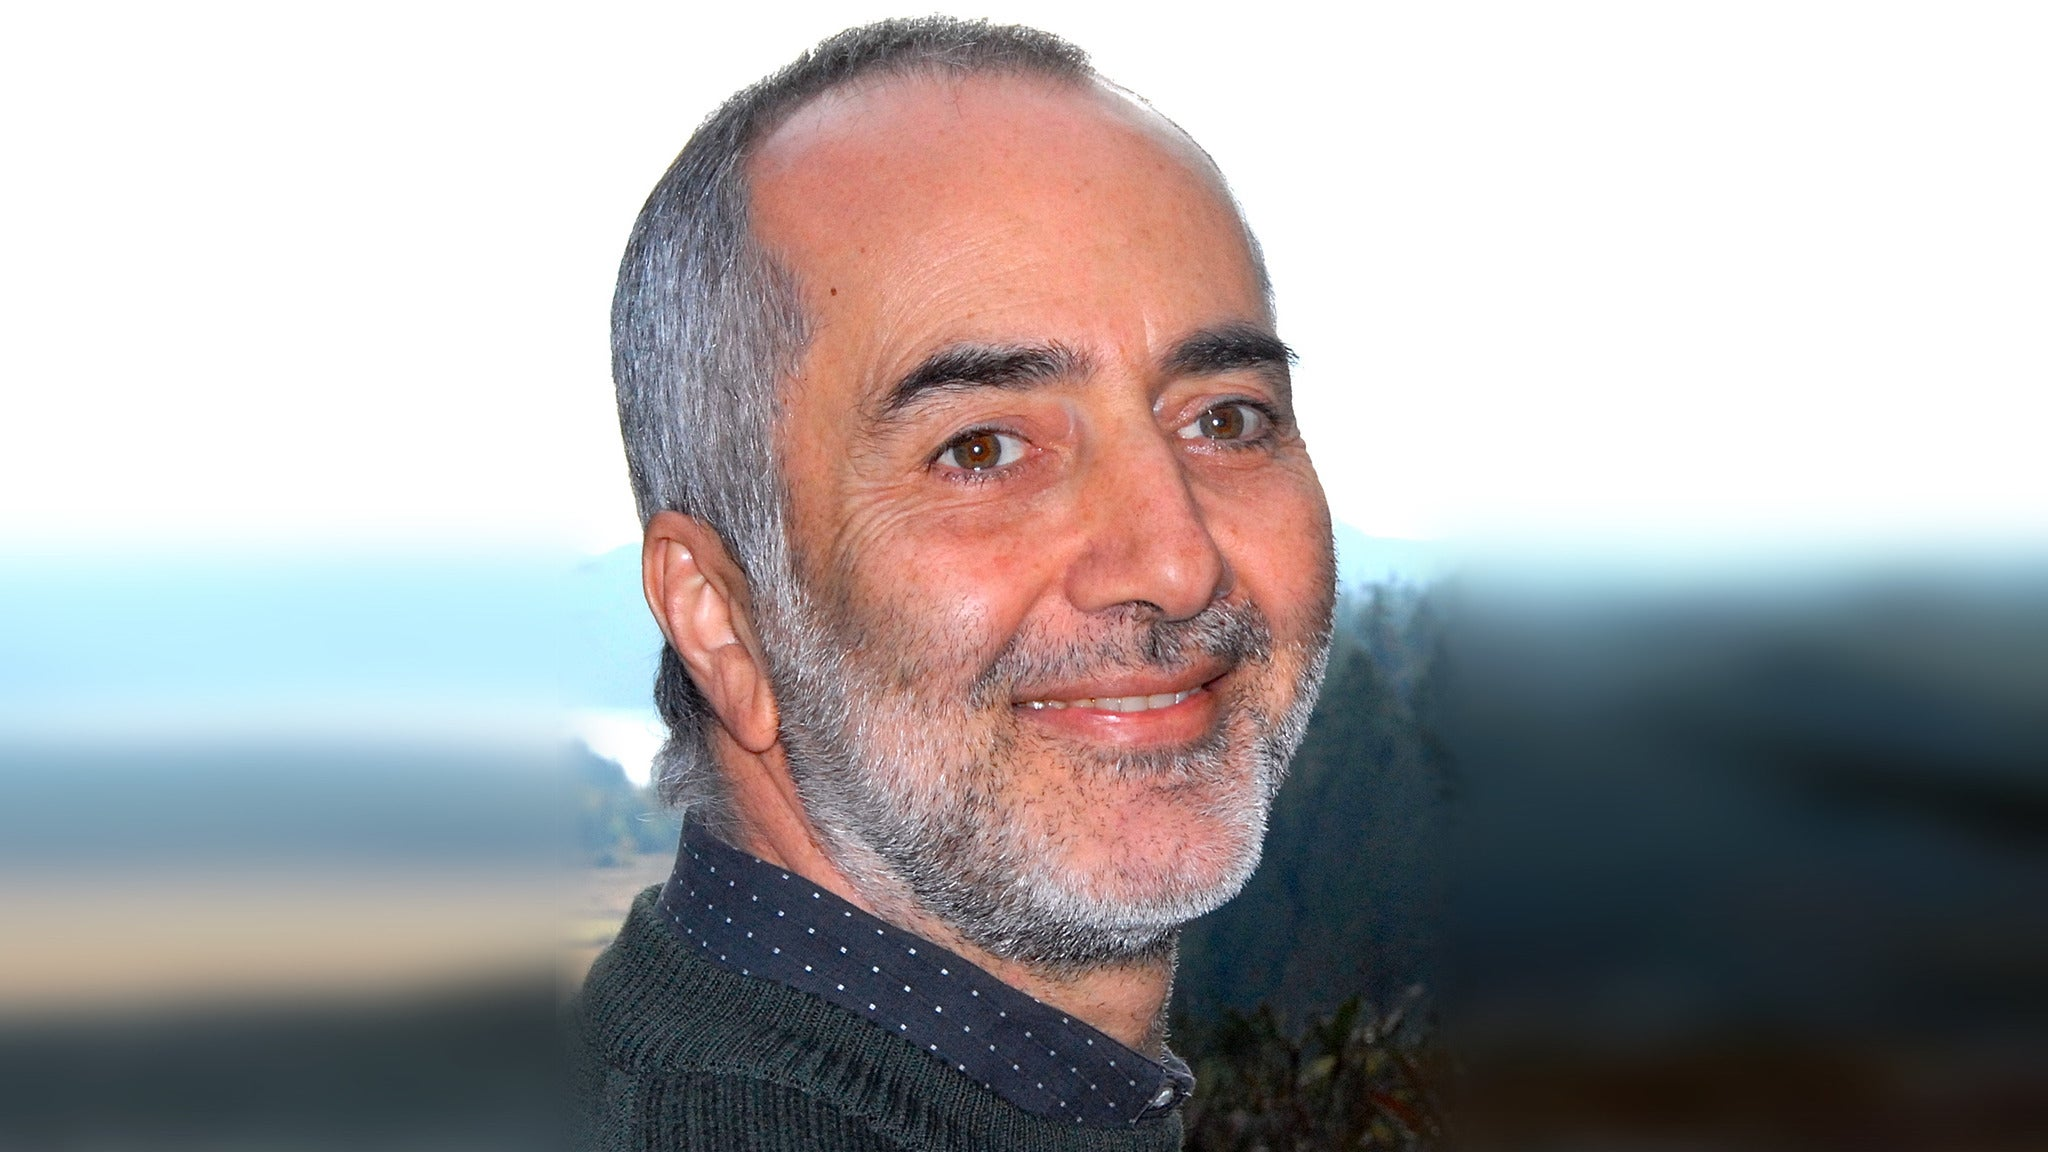 Raffi at Crest Theatre - Sacramento